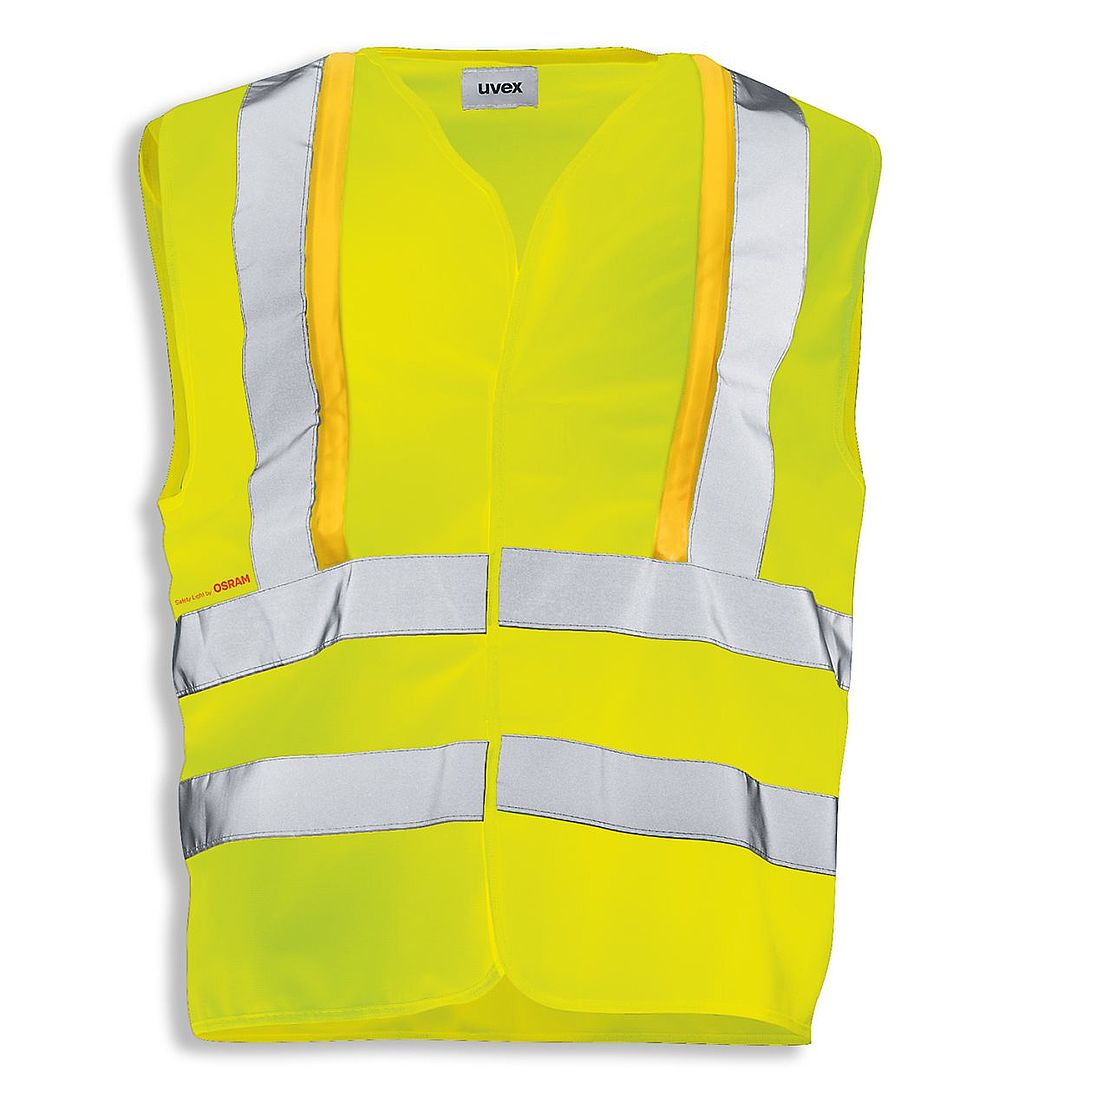 self-illuminating safety clothing protects you in the dark